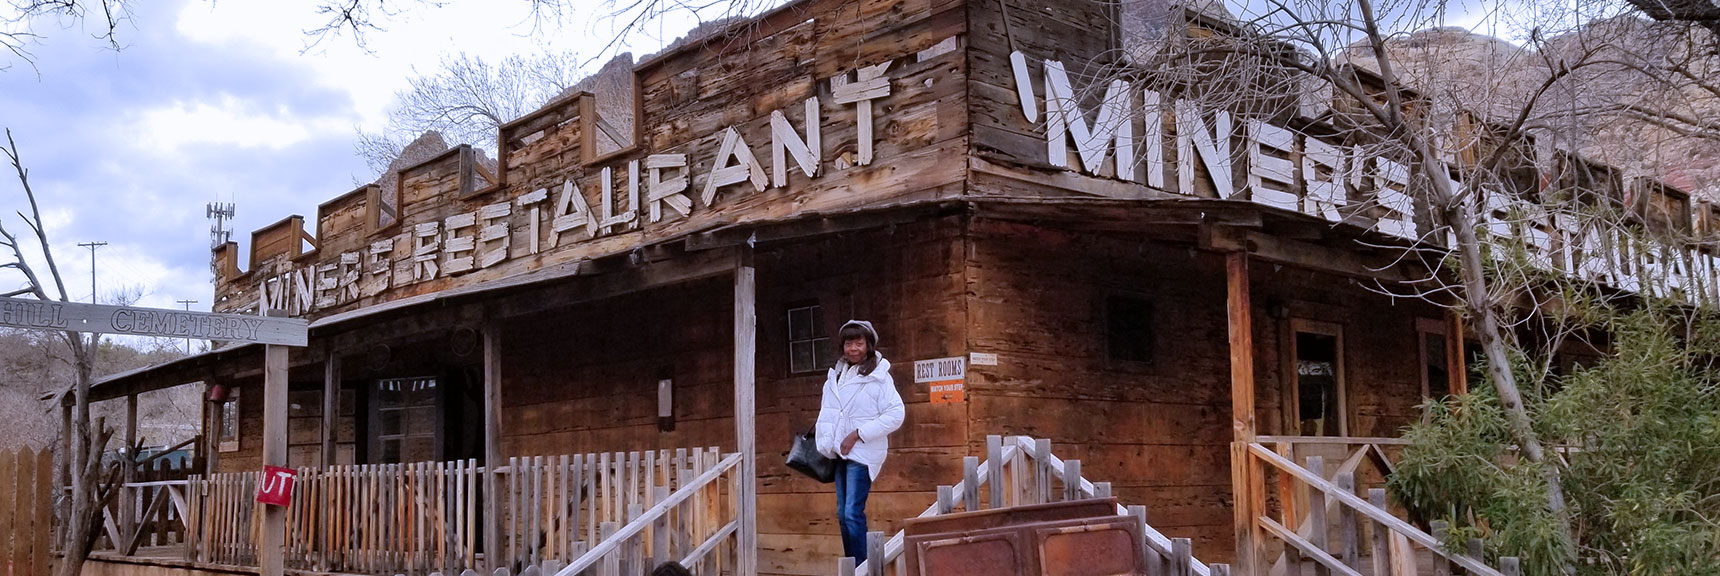 Miners Restaurant at Bonnie Springs Ranch, Nevada